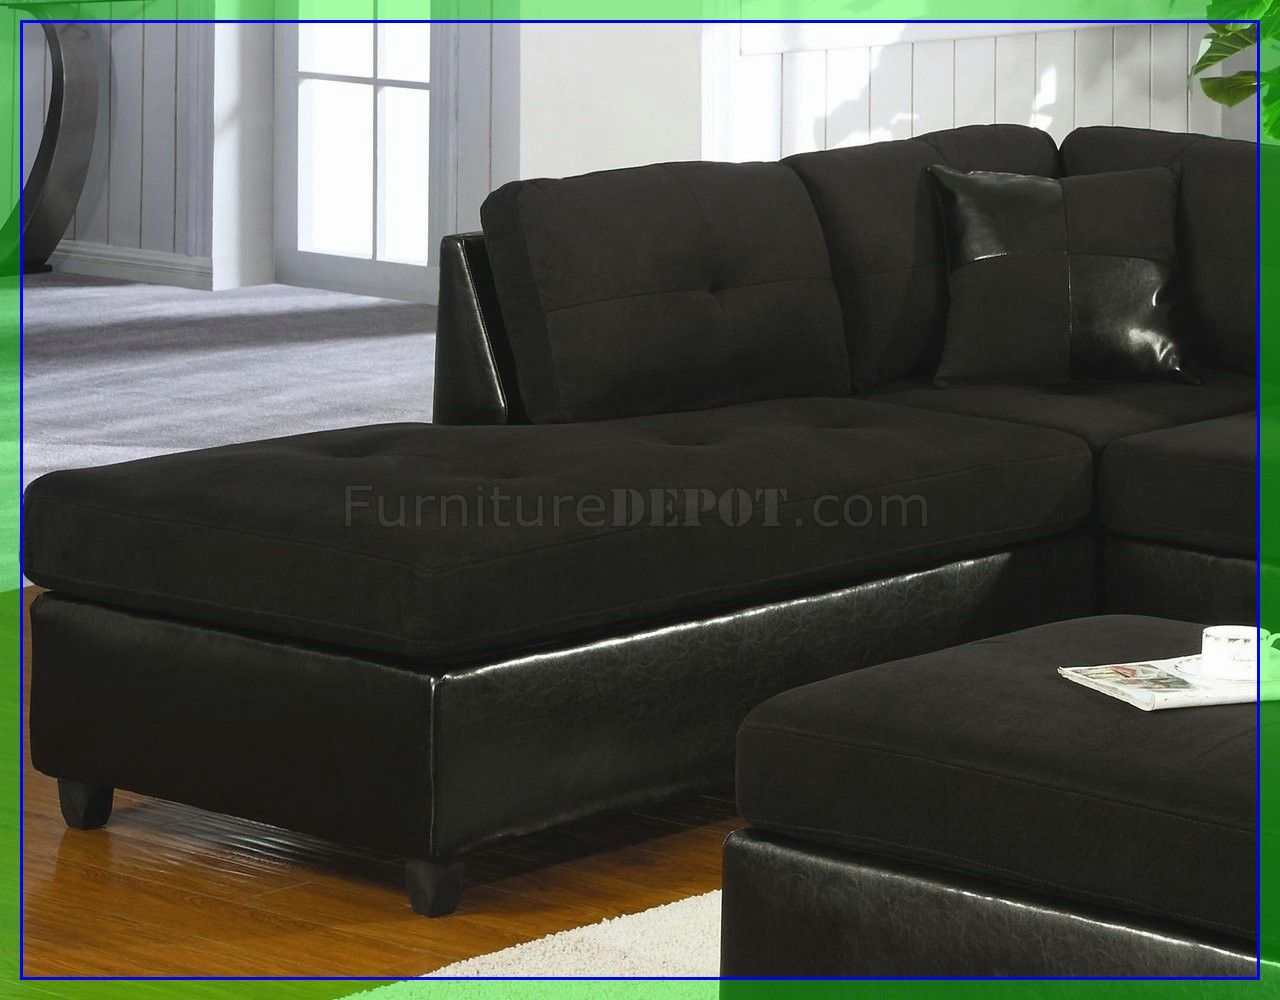 189 Reference Of Black Sectional Couch Microfiber In 2020 Sectional Couch Leather Couch Decorating Couch Decor